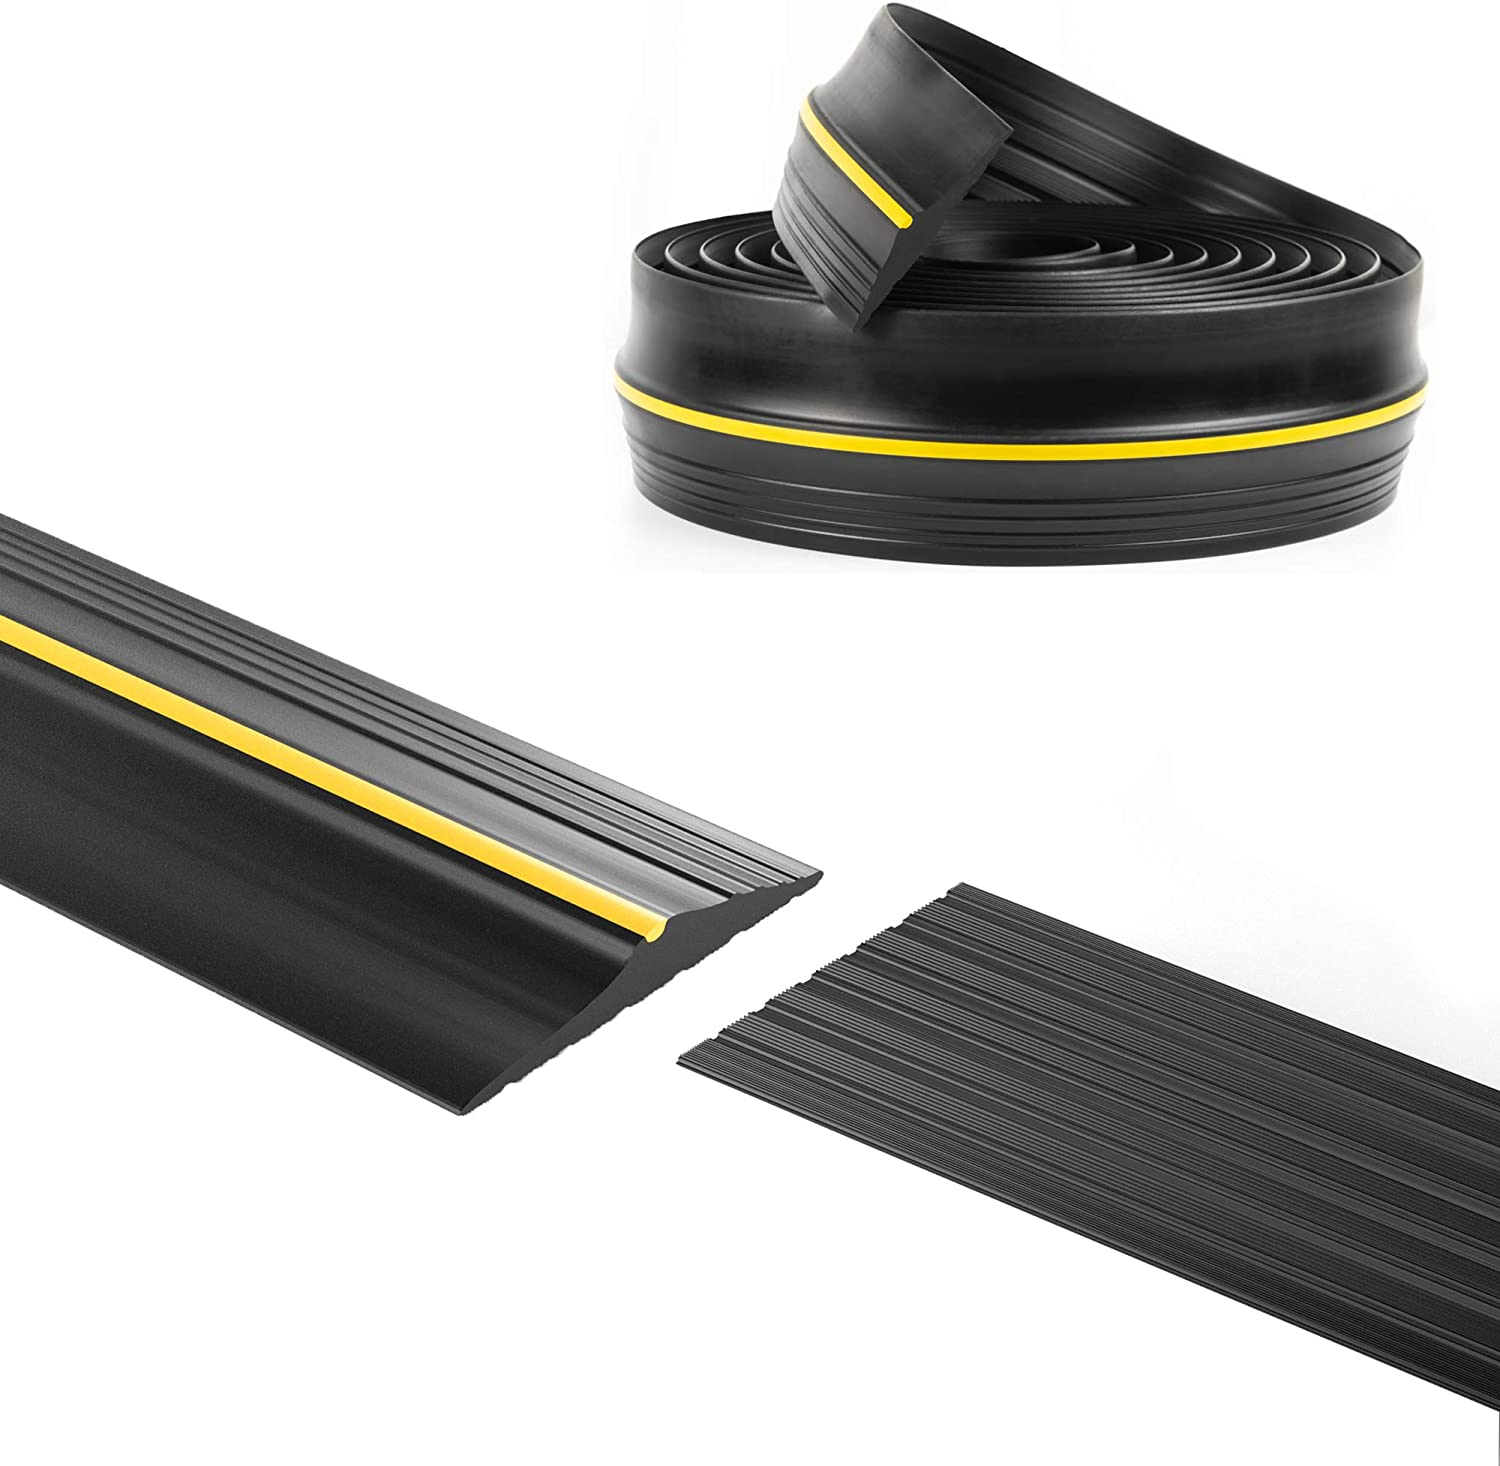 Panady Universal Garage Door Bottom Weather Strip